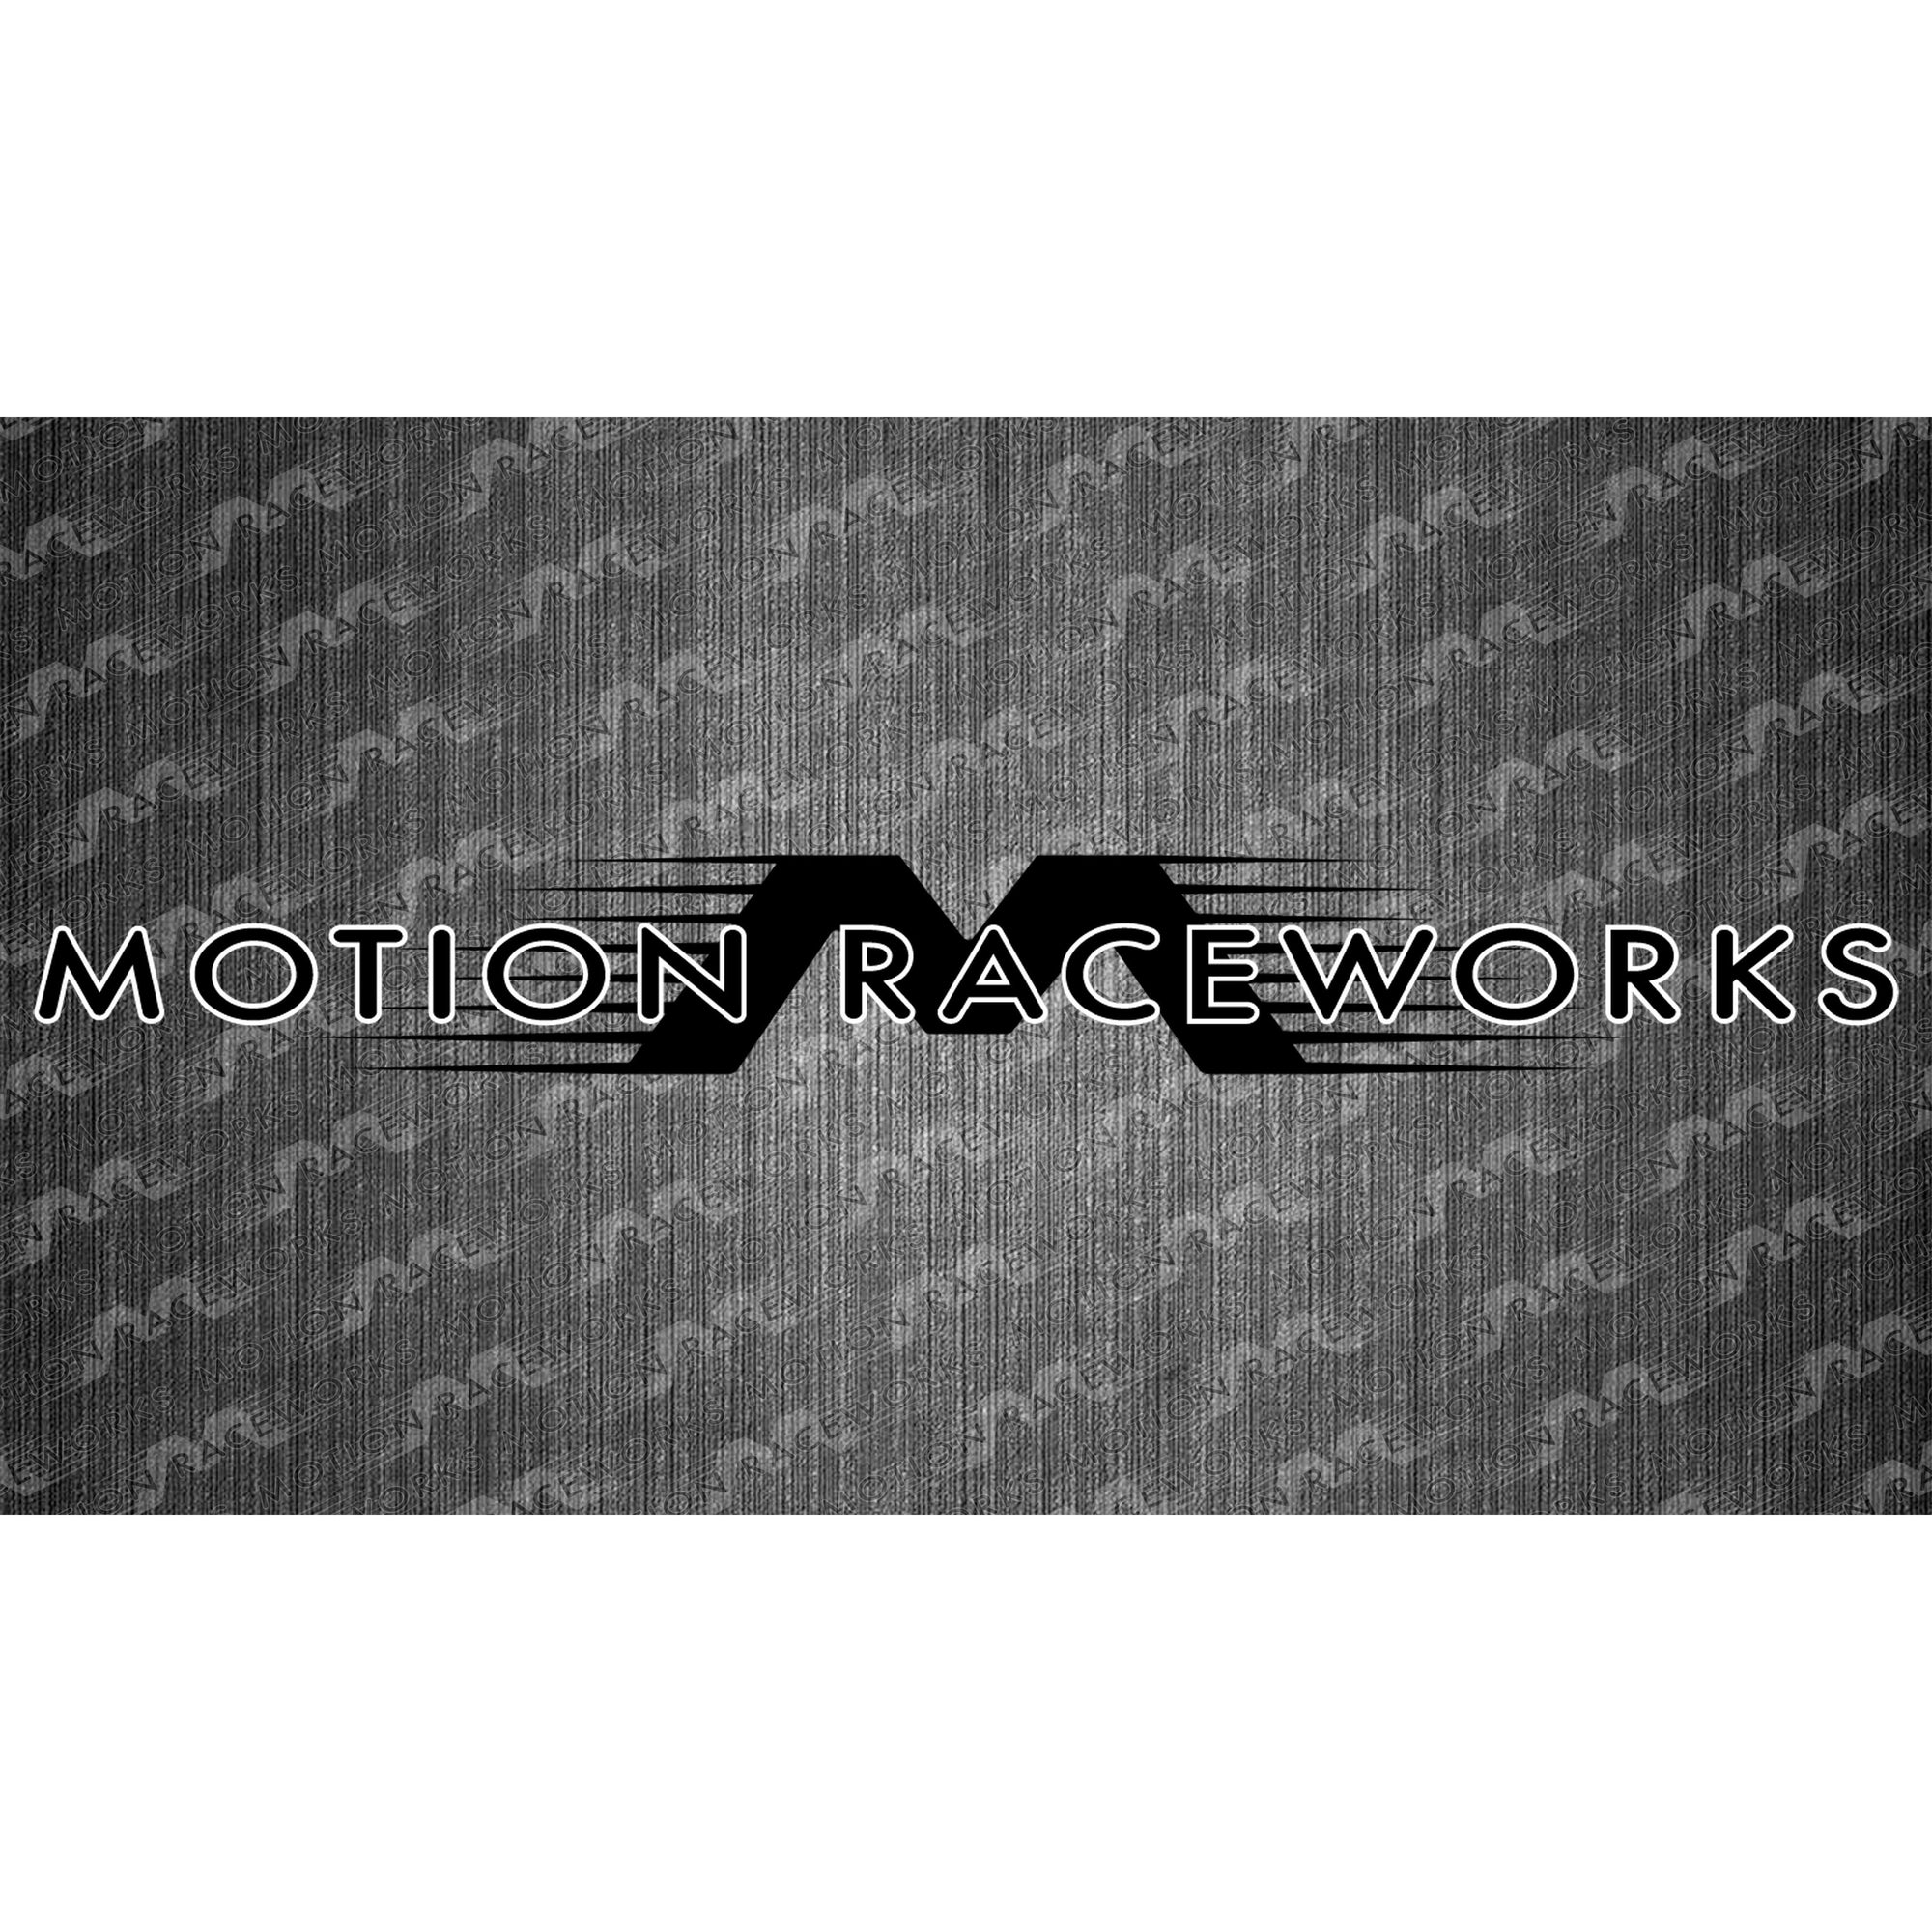 "Black/White Motion Raceworks Decal 12""x3""-Motion Raceworks-Motion Raceworks"